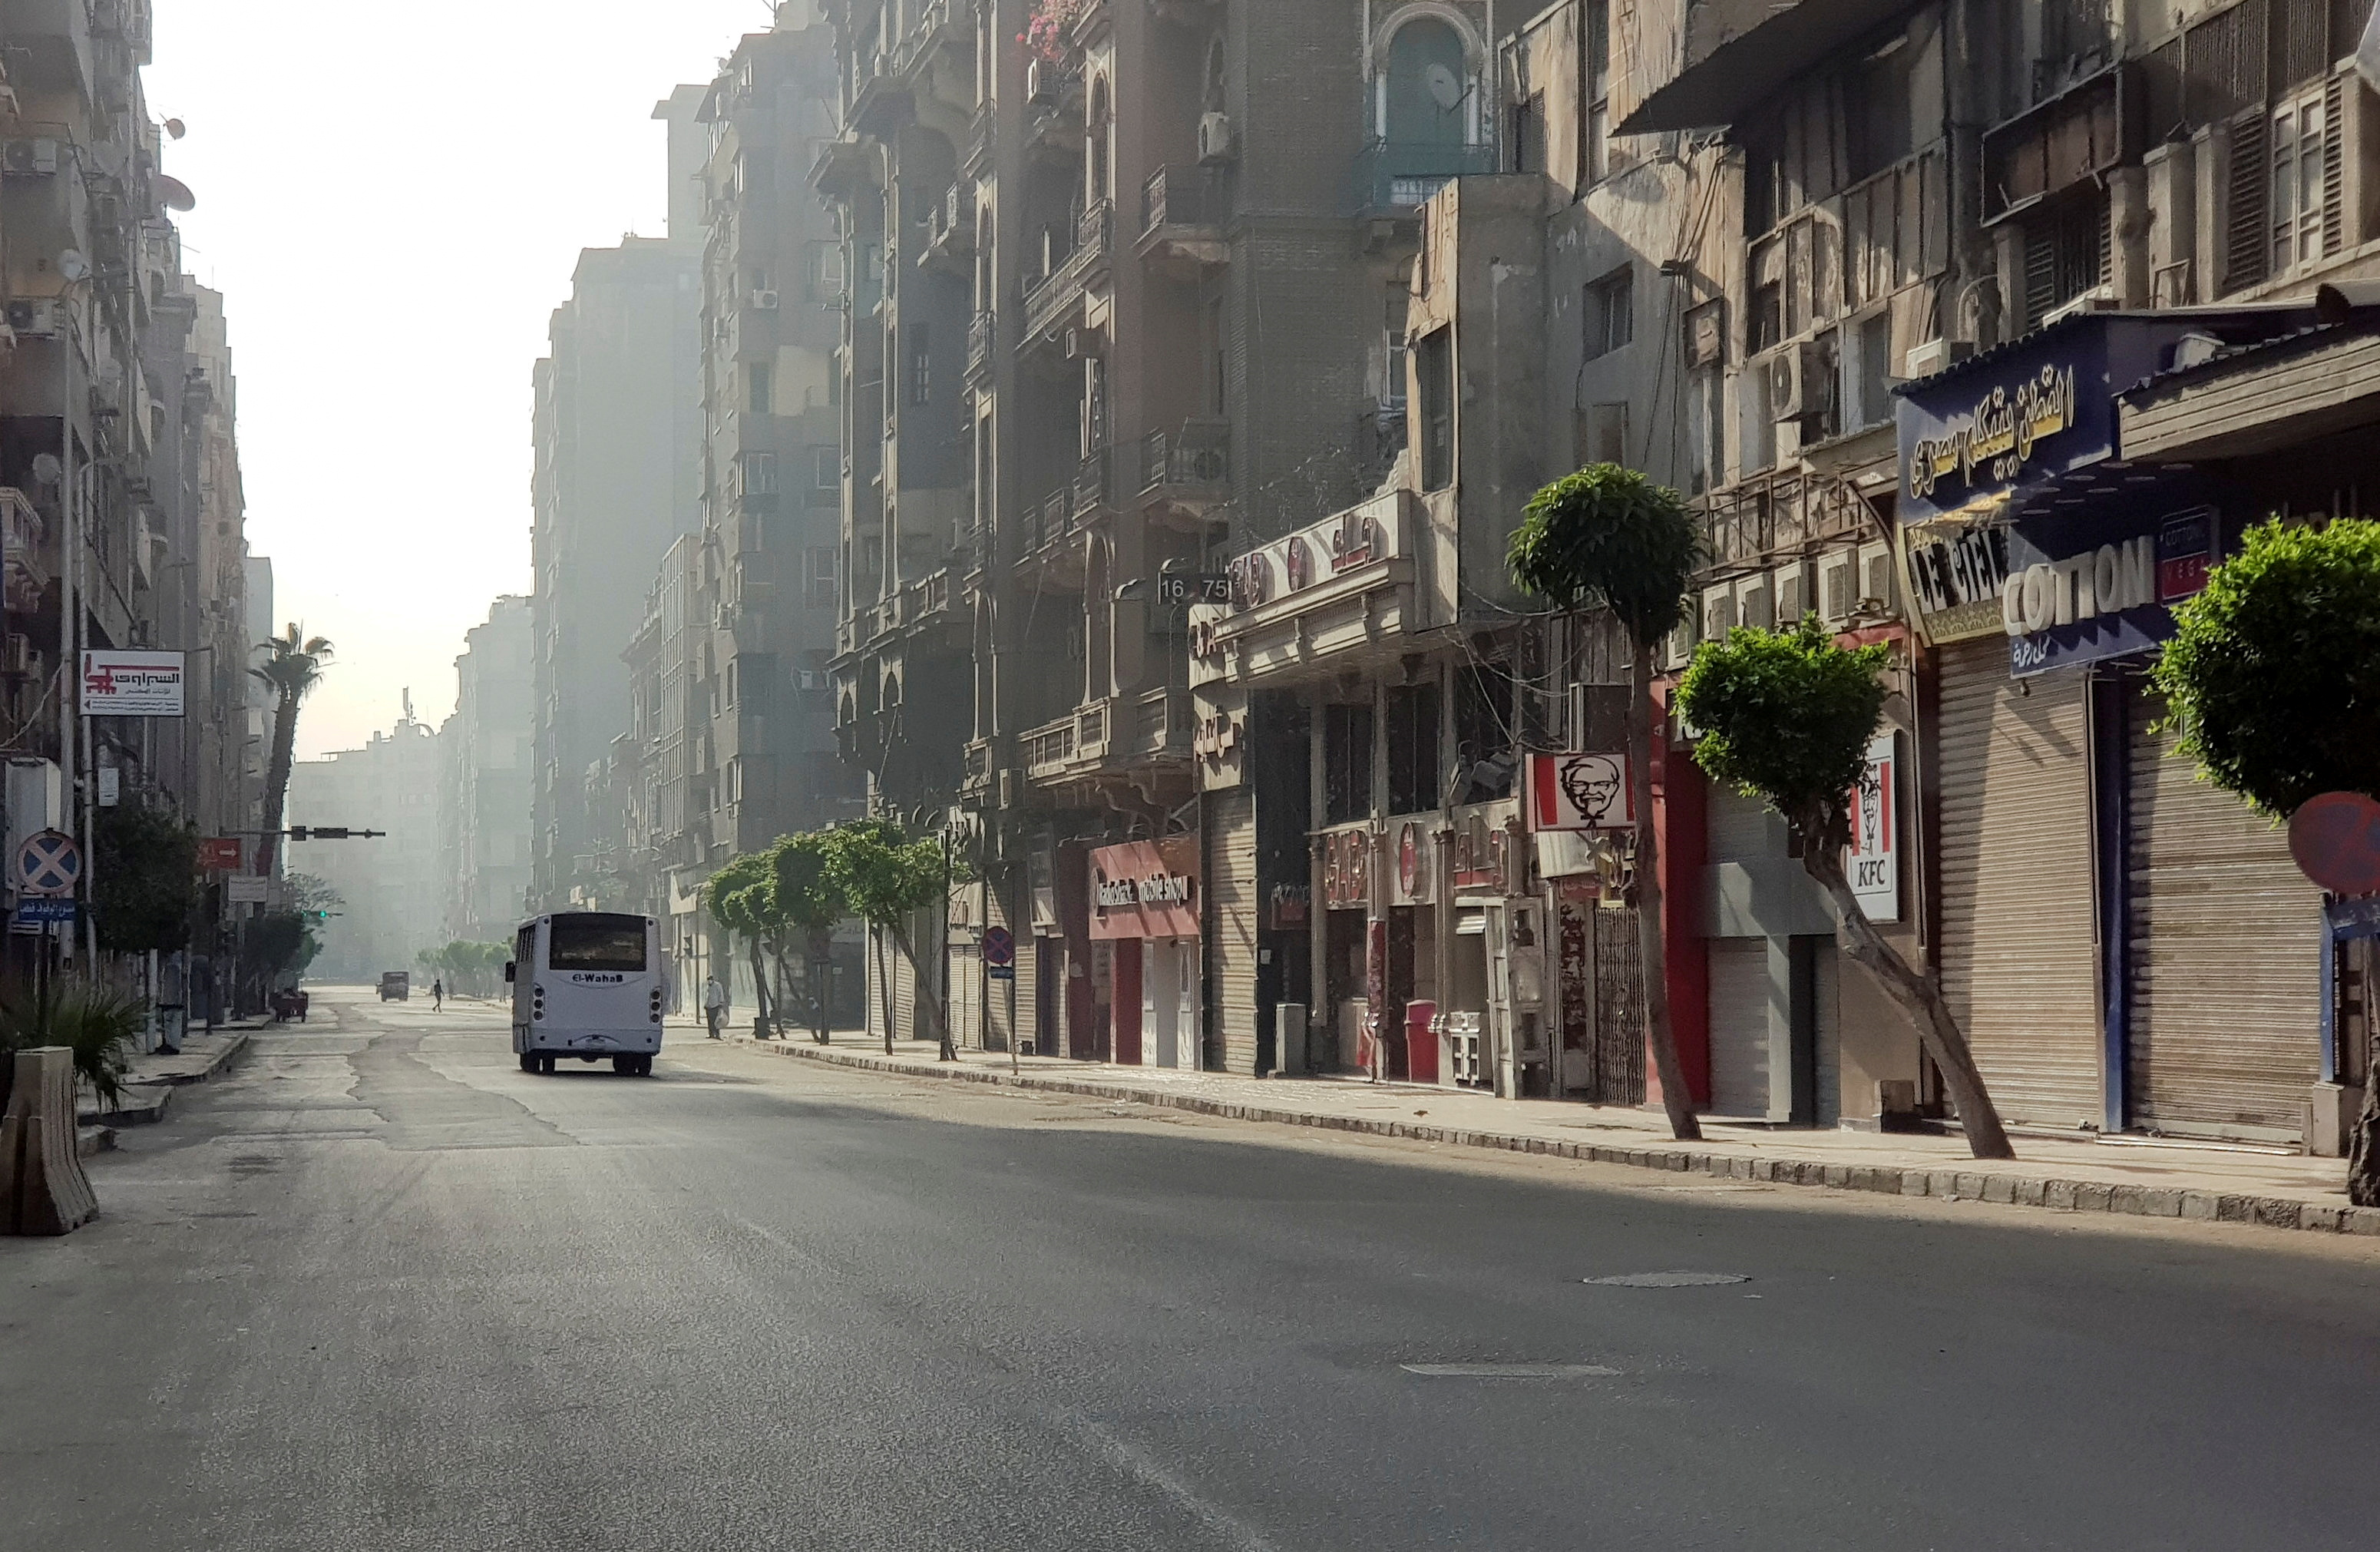 A general view of empty streets in downtown Cairo, amid the coronavirus disease (COVID-19) outbreak, during the traditional spring holiday of 'Shem al-Neseem', in Cairo, Egypt, May 3, 2021. REUTERS/Sayed Sheasha/File Photo